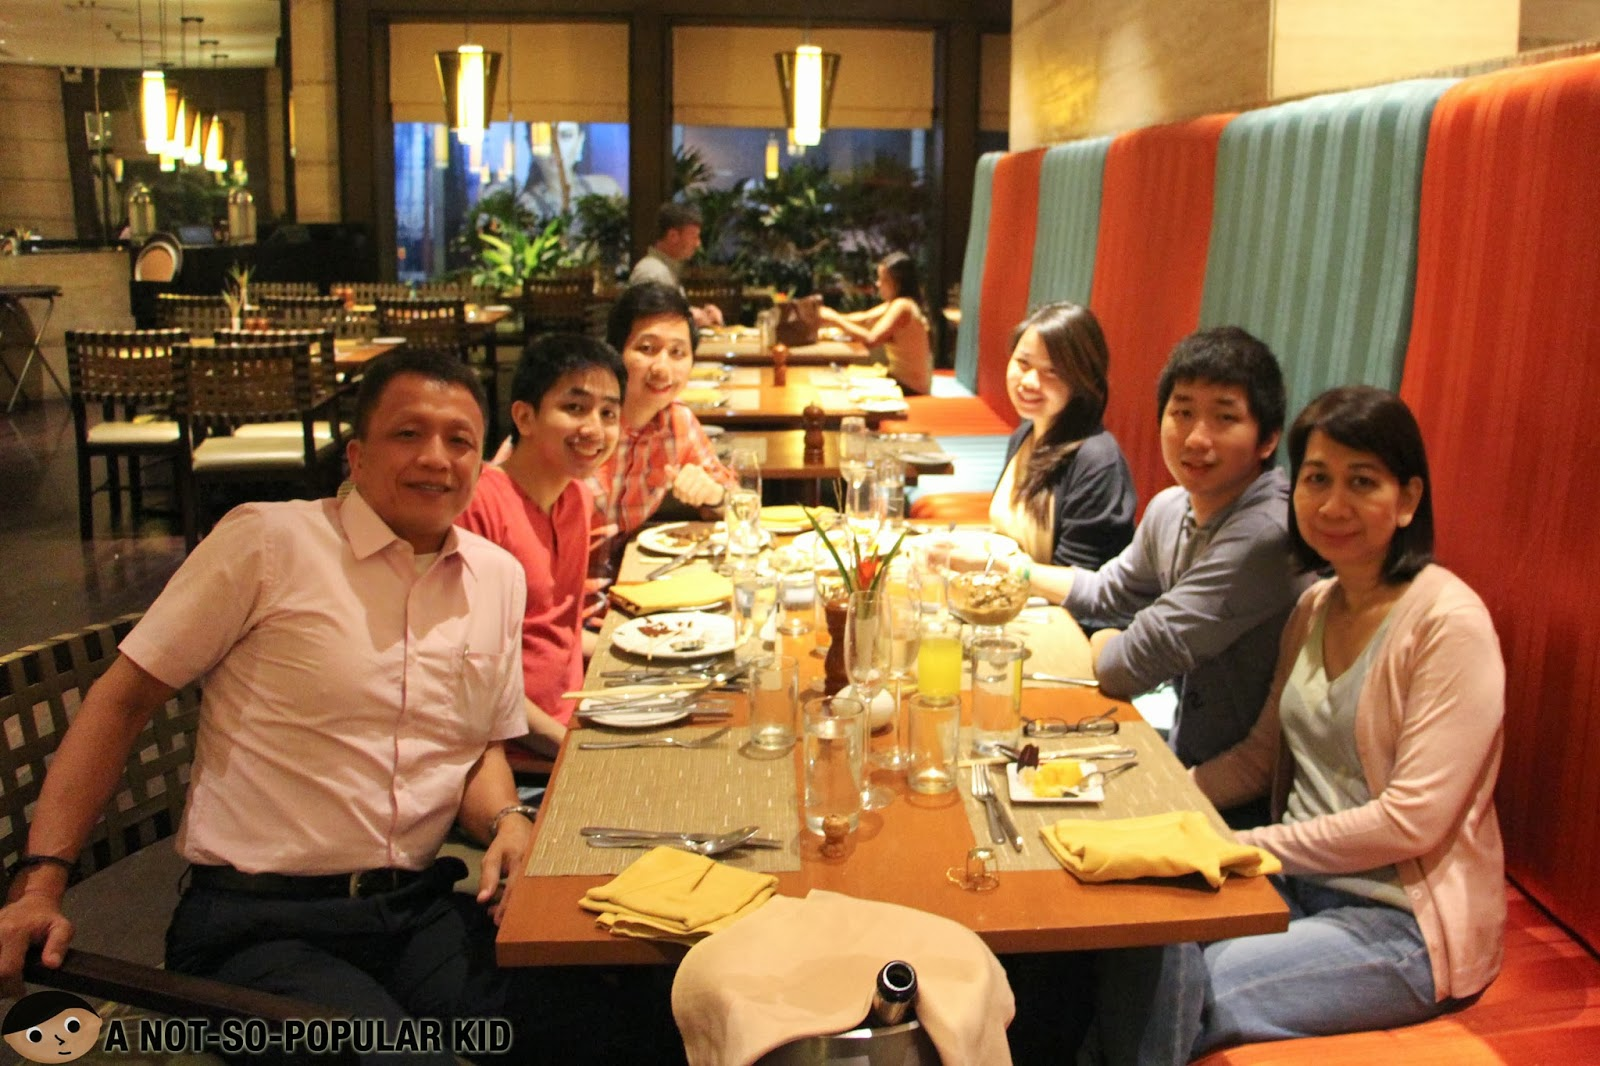 A Not-So-Popular Kid celebrating graduation with the family in Basix of Dusit Thani